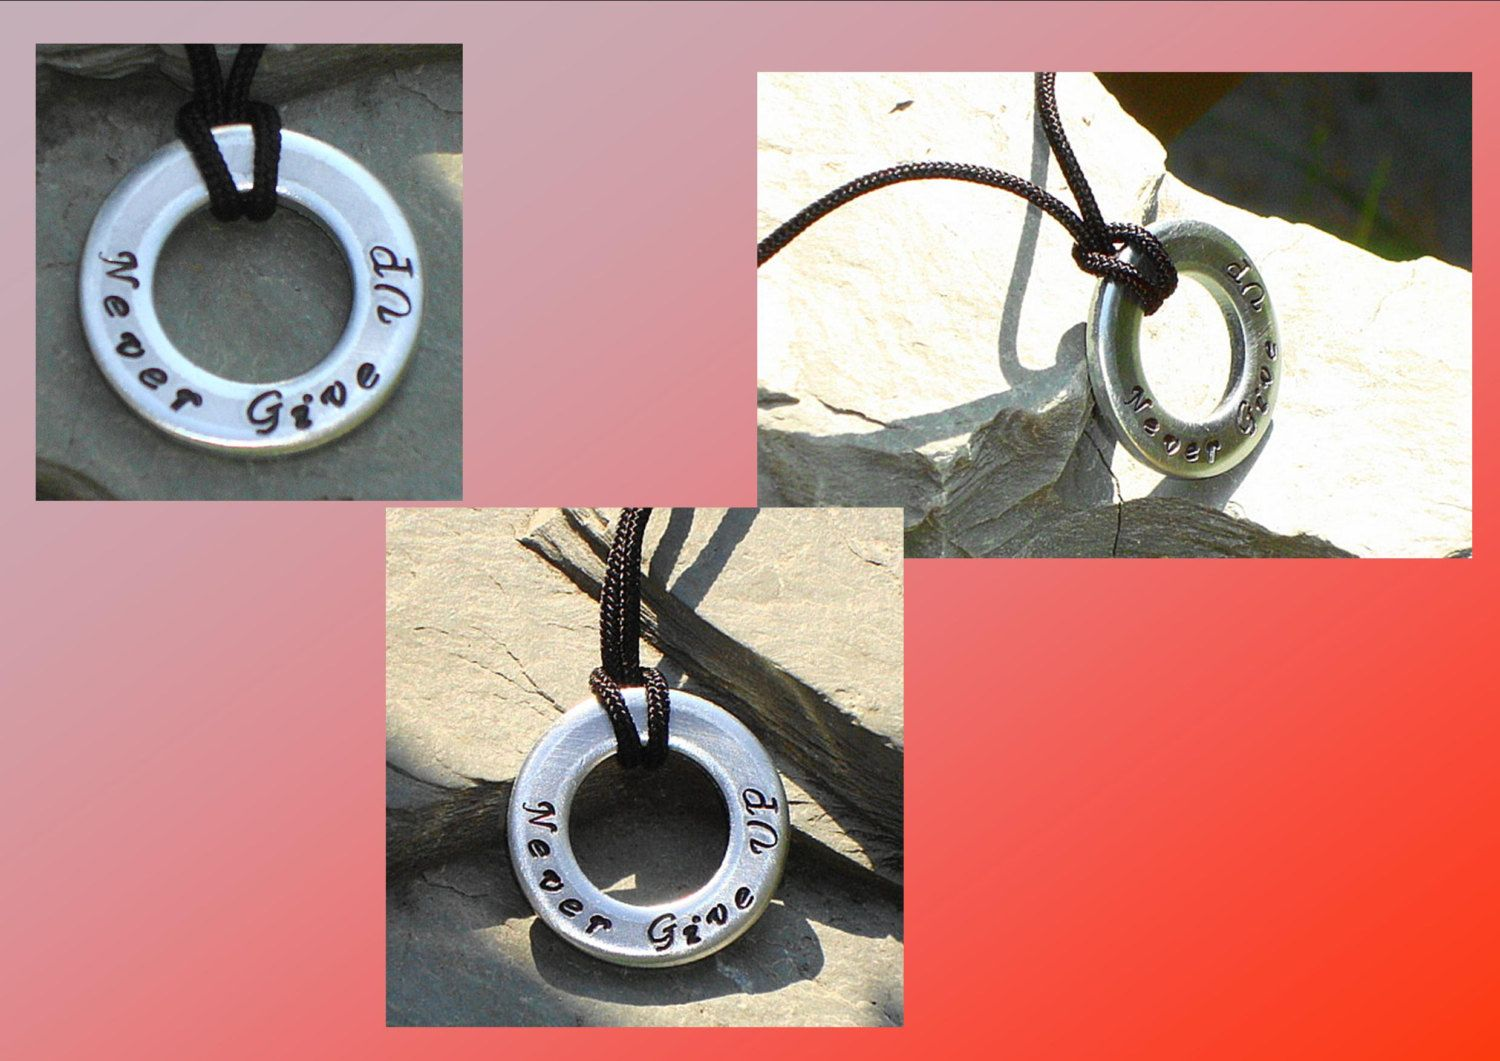 Mens washer pendant steel washer necklace metal stamped washer mens washer pendant steel washer necklace metal stamped washer pendant men masculine male jewelry mozeypictures